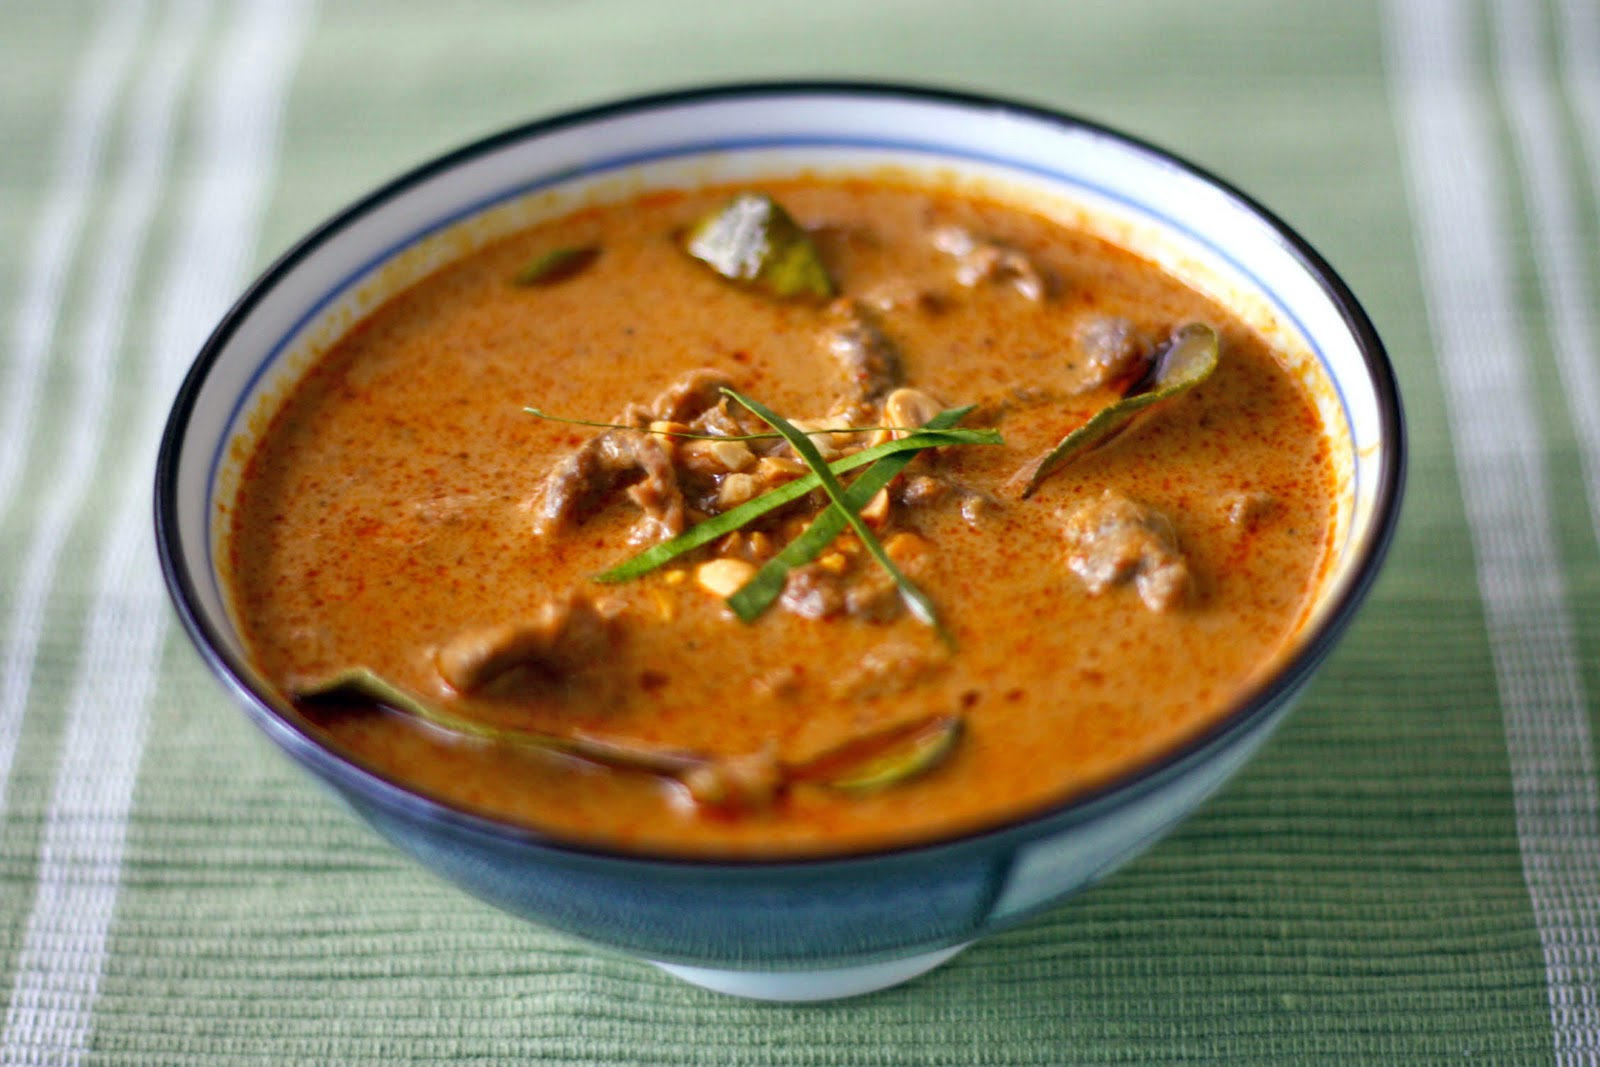 ... kai jpg panang curry with beef from a 26 panang curry panang curry